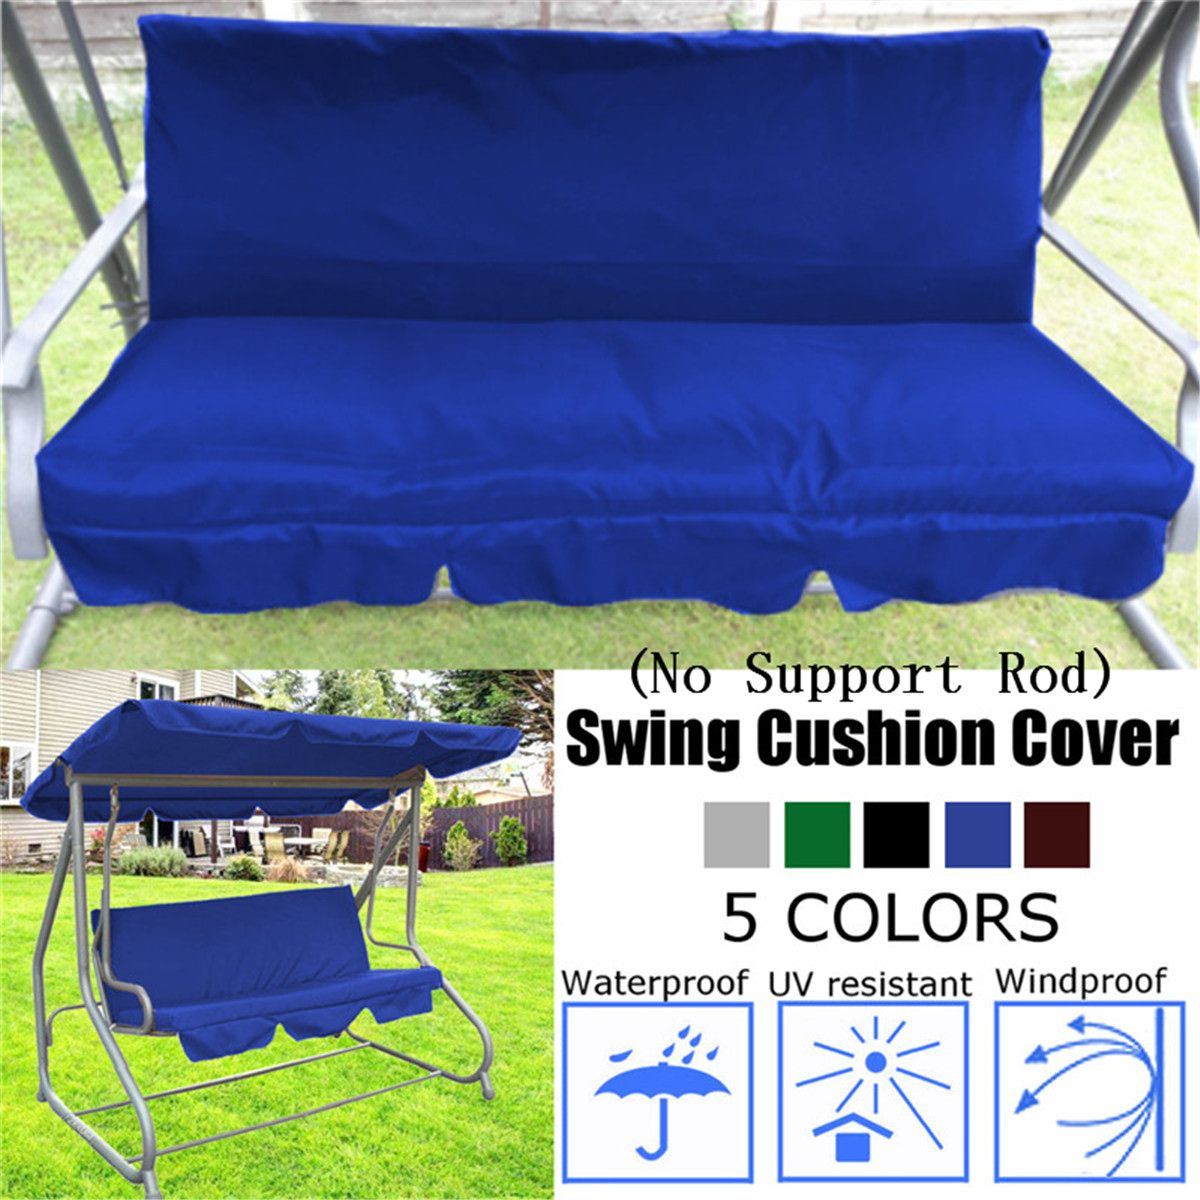 150CM 3 Seater Garden Swing Cushion 5 Colors Waterproof Dustproof Chair Replacement Canopy Spare Fabric Cover Dust Covers